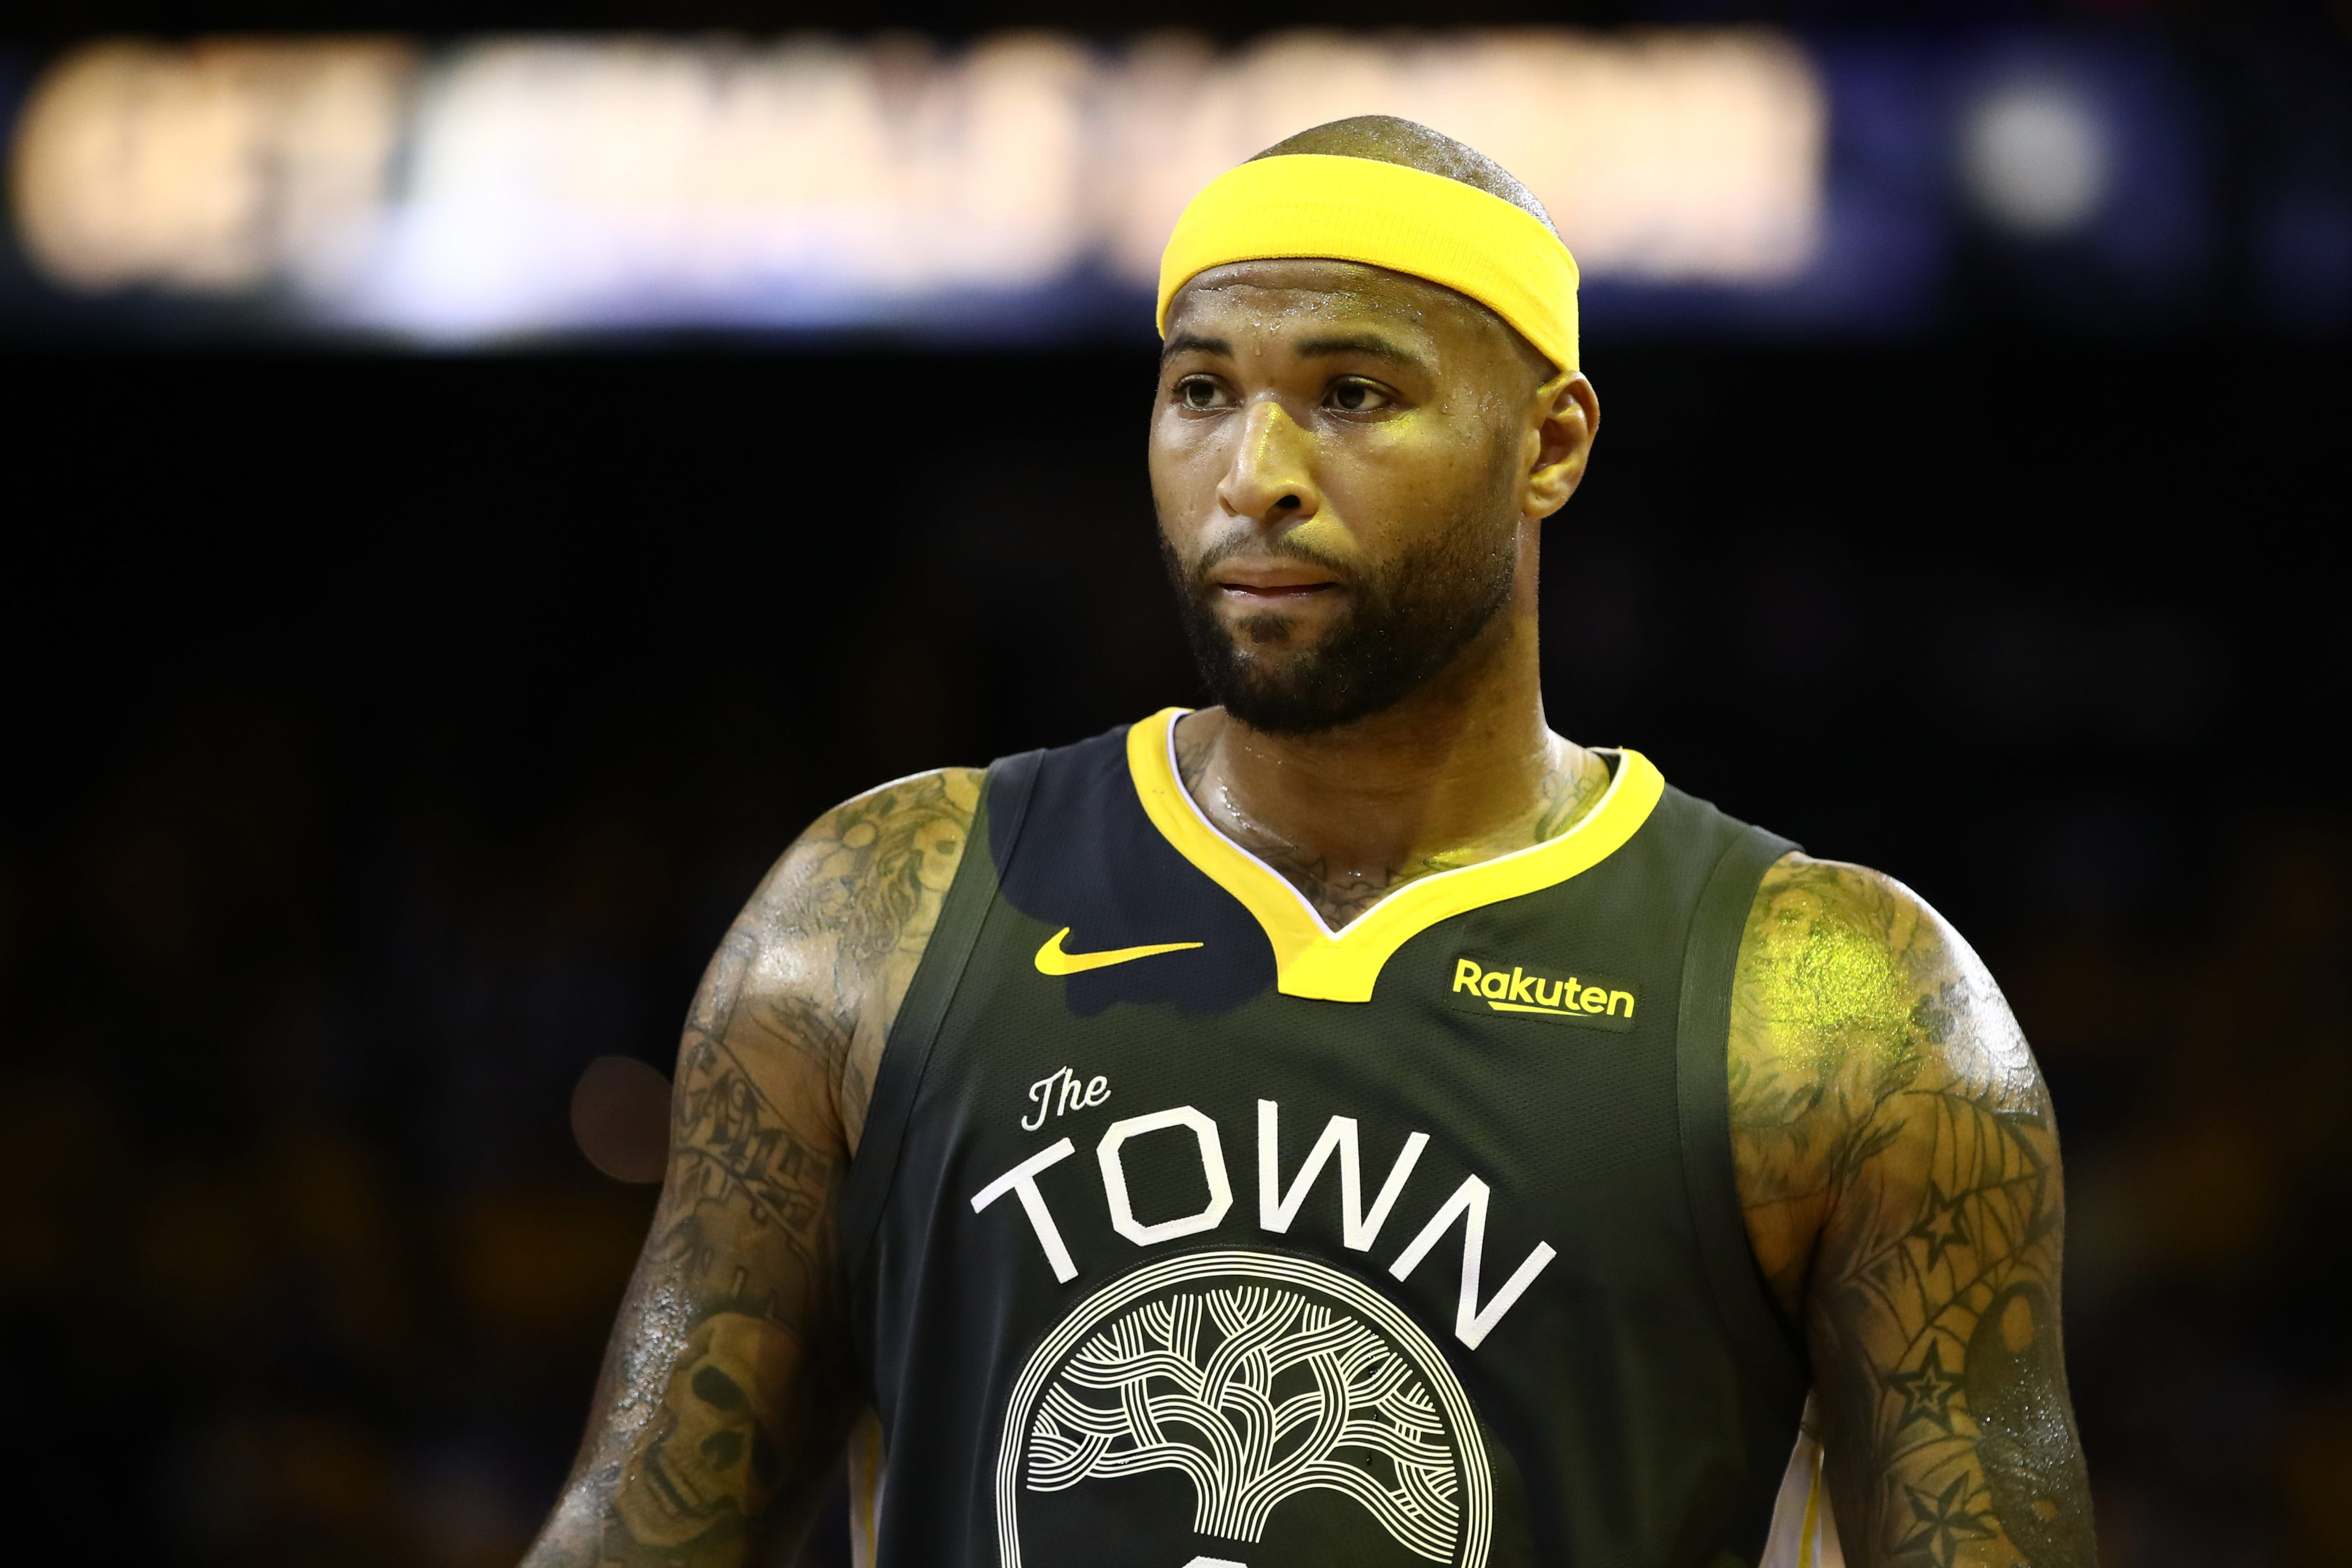 Lakers center DeMarcus Cousins suffers torn ACL